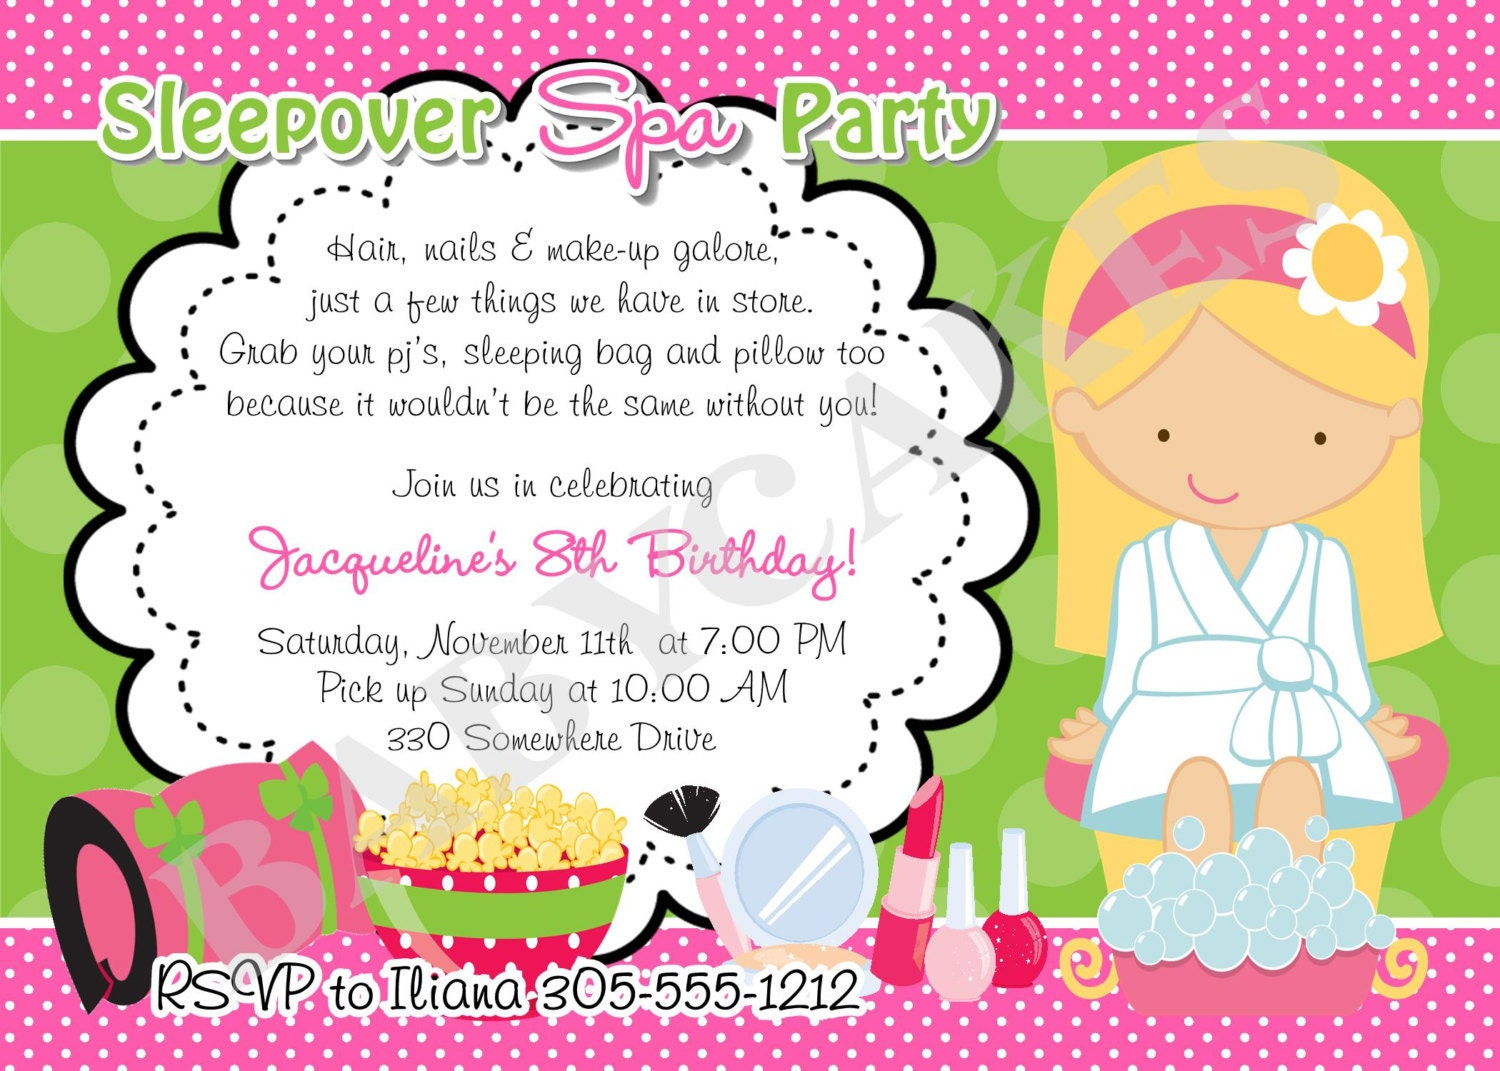 Spa Party Invitations Templates Image collections - Party ...